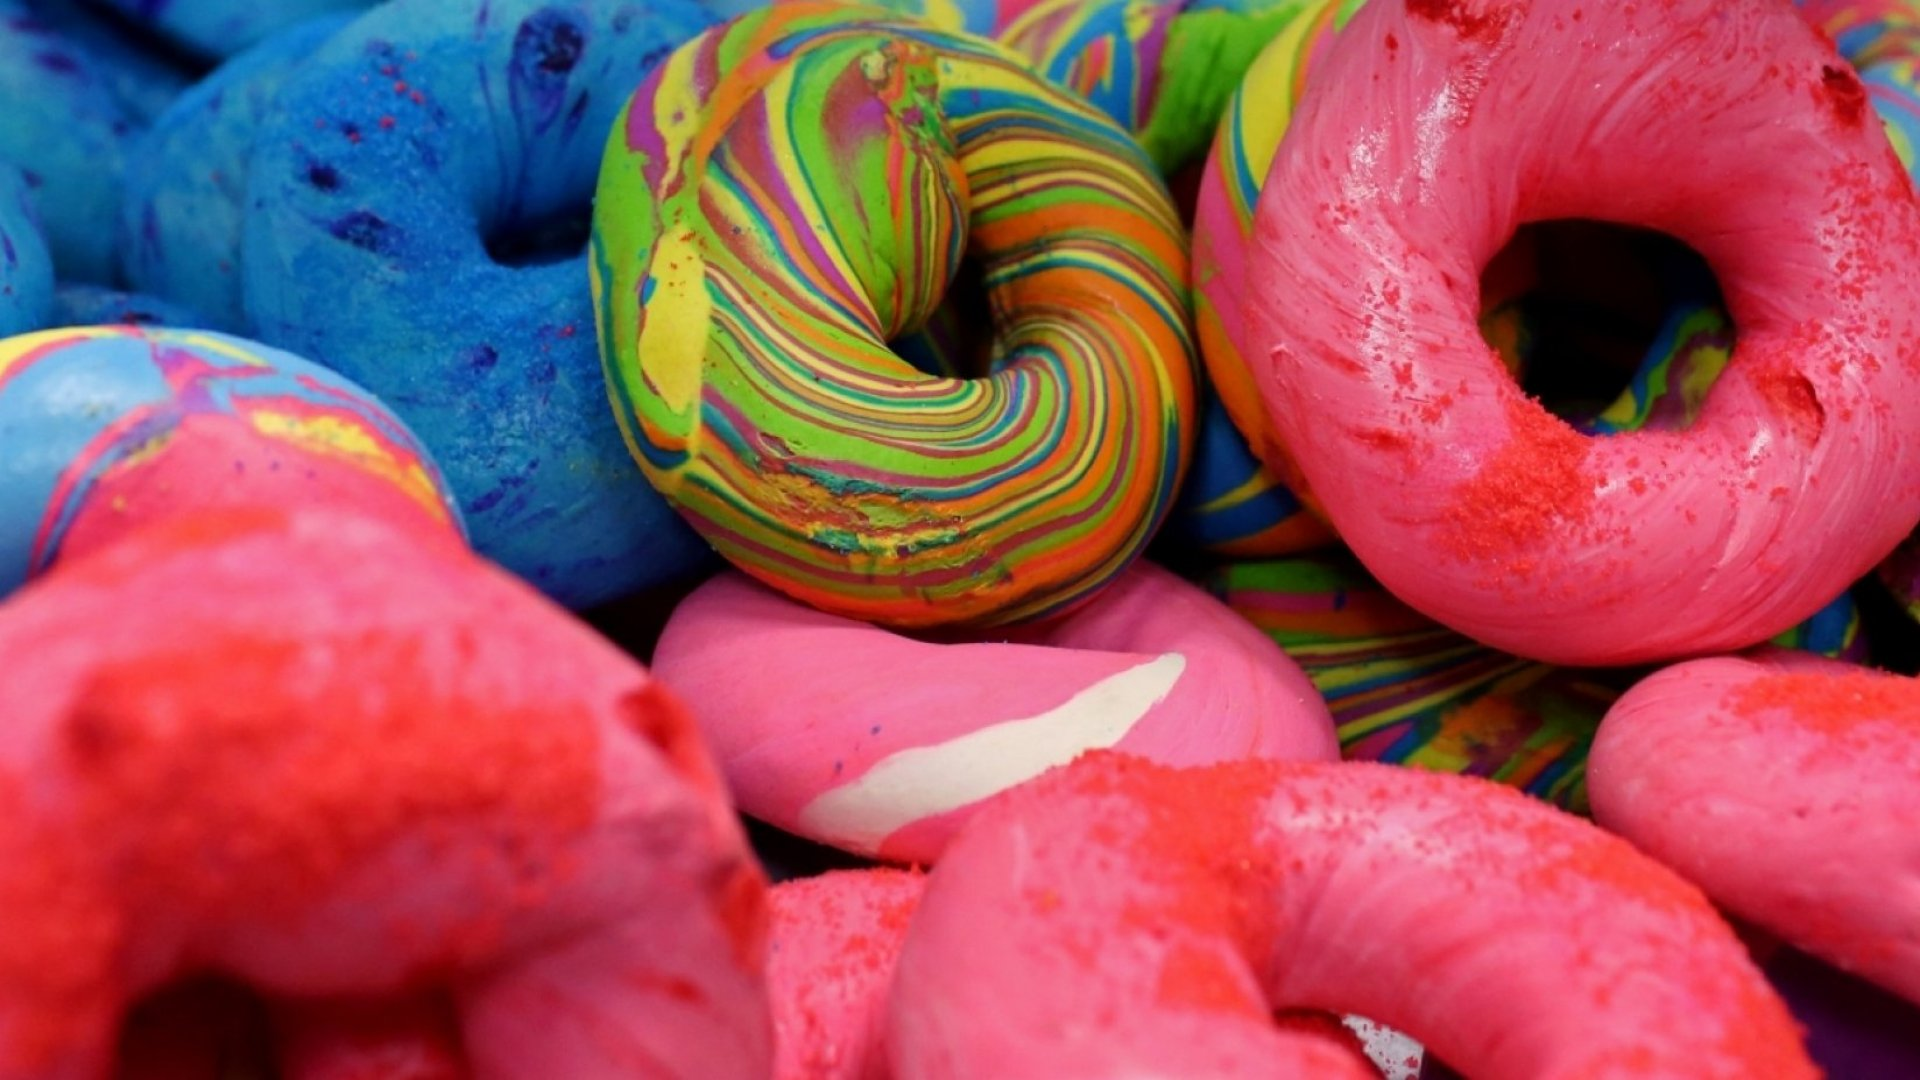 Why You Shouldn't Build a Business Based on Rainbows